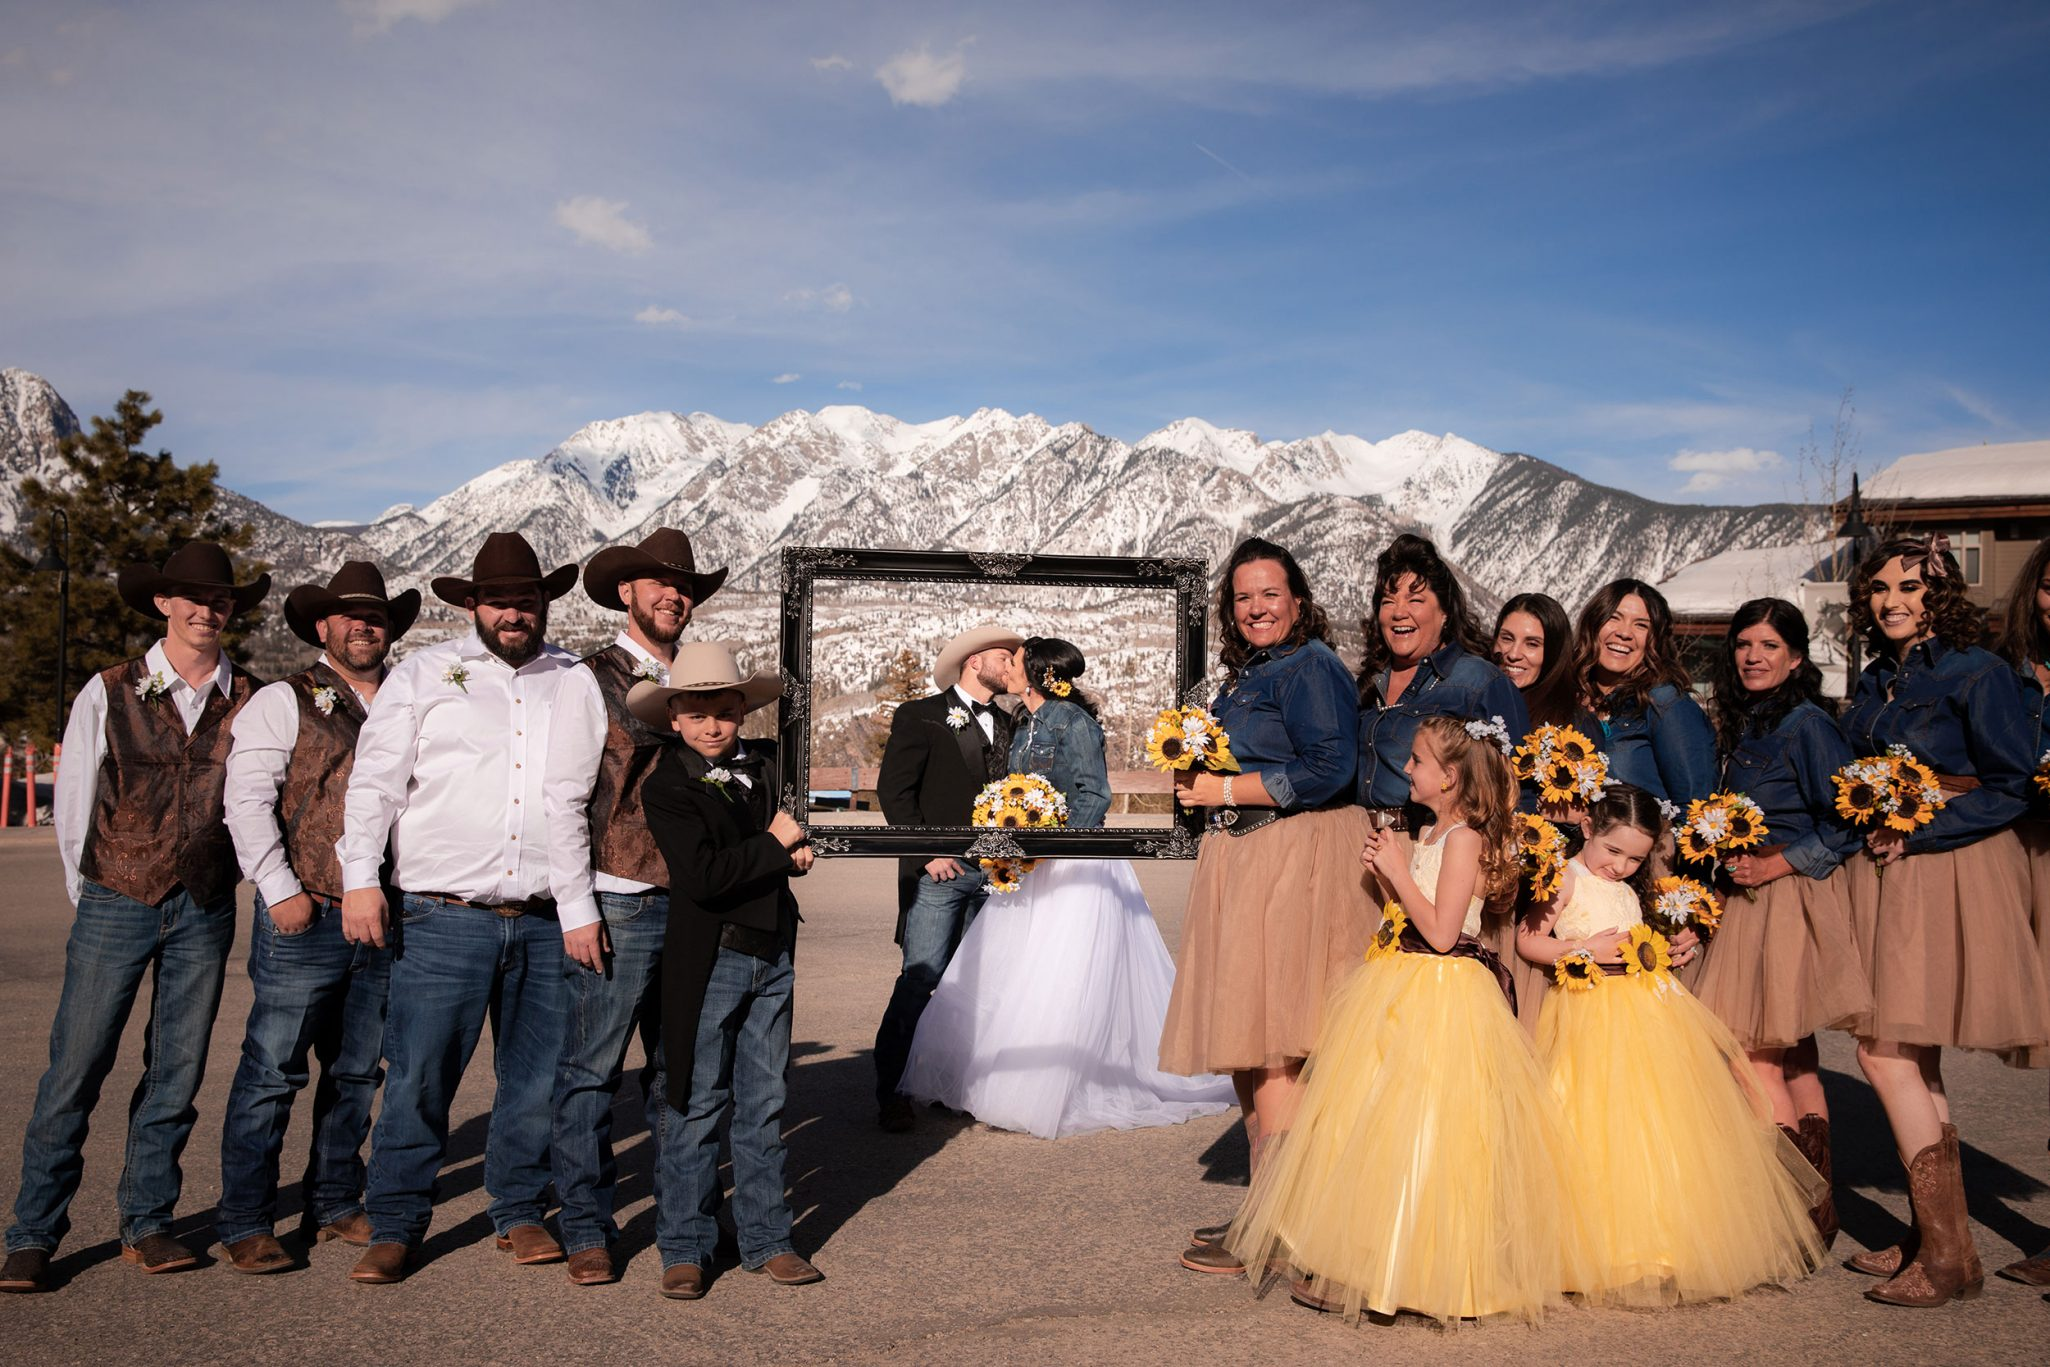 Bride + groom kiss at Purgatory Resort, Durango Colorado